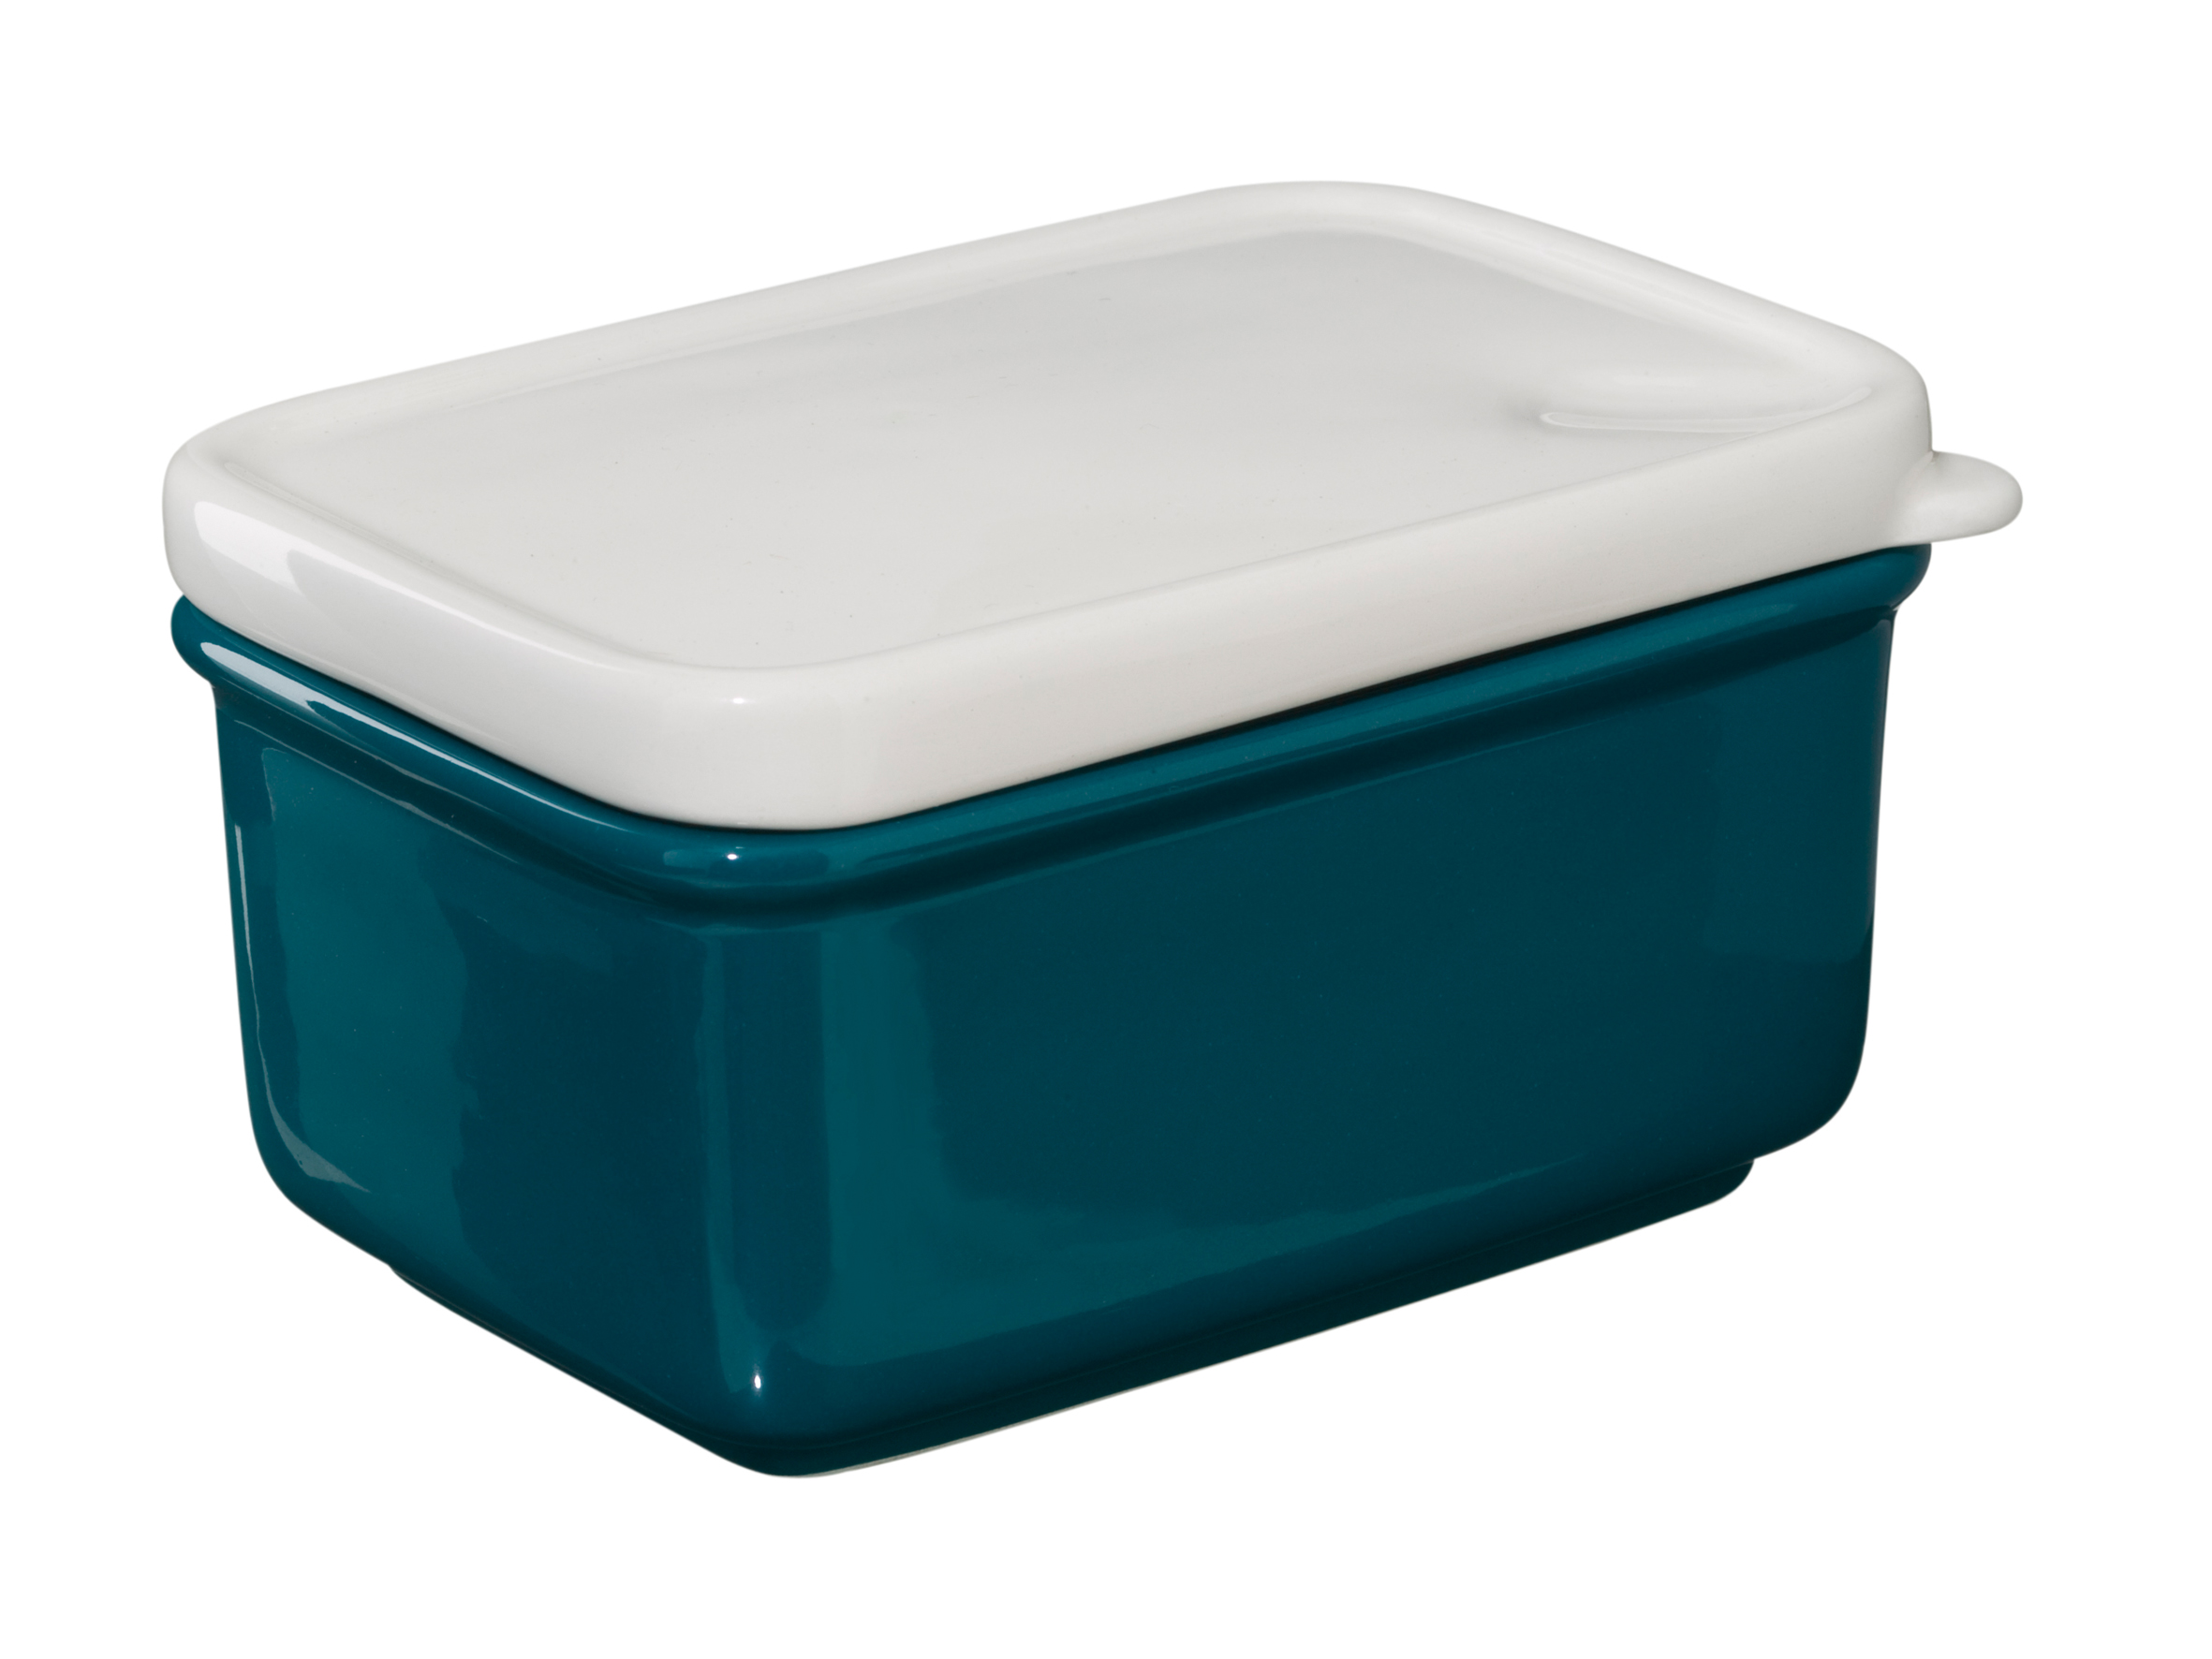 Butter Dish - Is that Plastic? - Petrol Blue